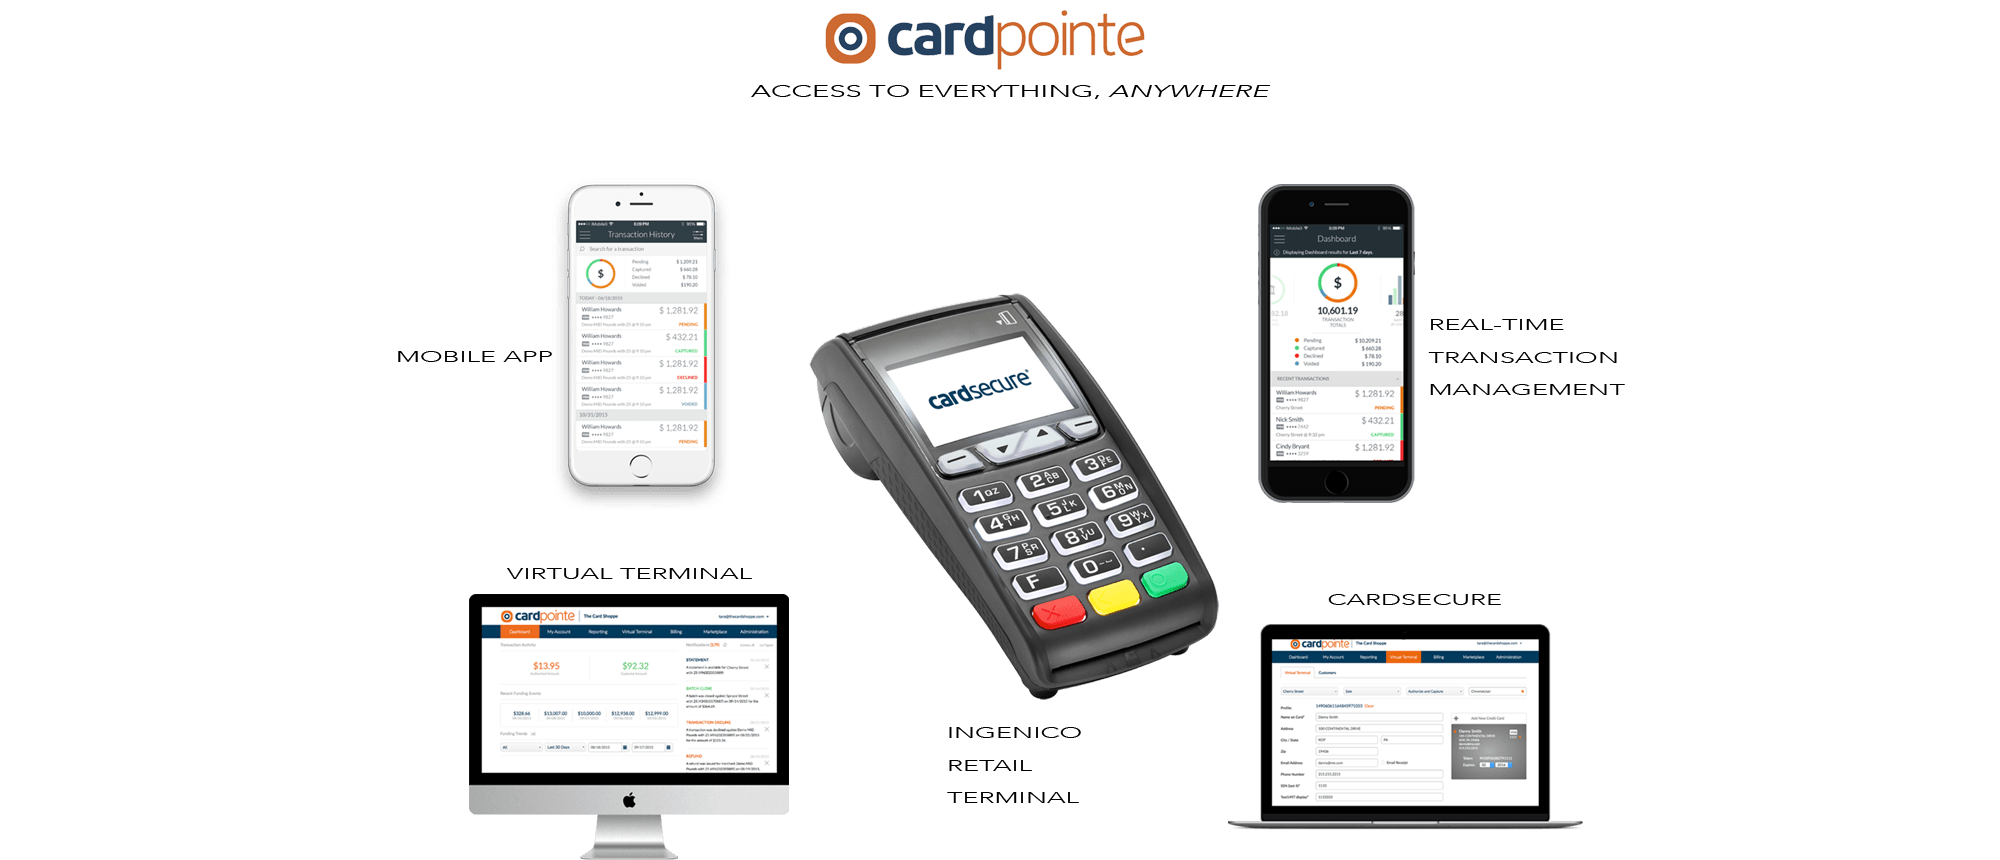 CardPointe = Access to everything, anywhere